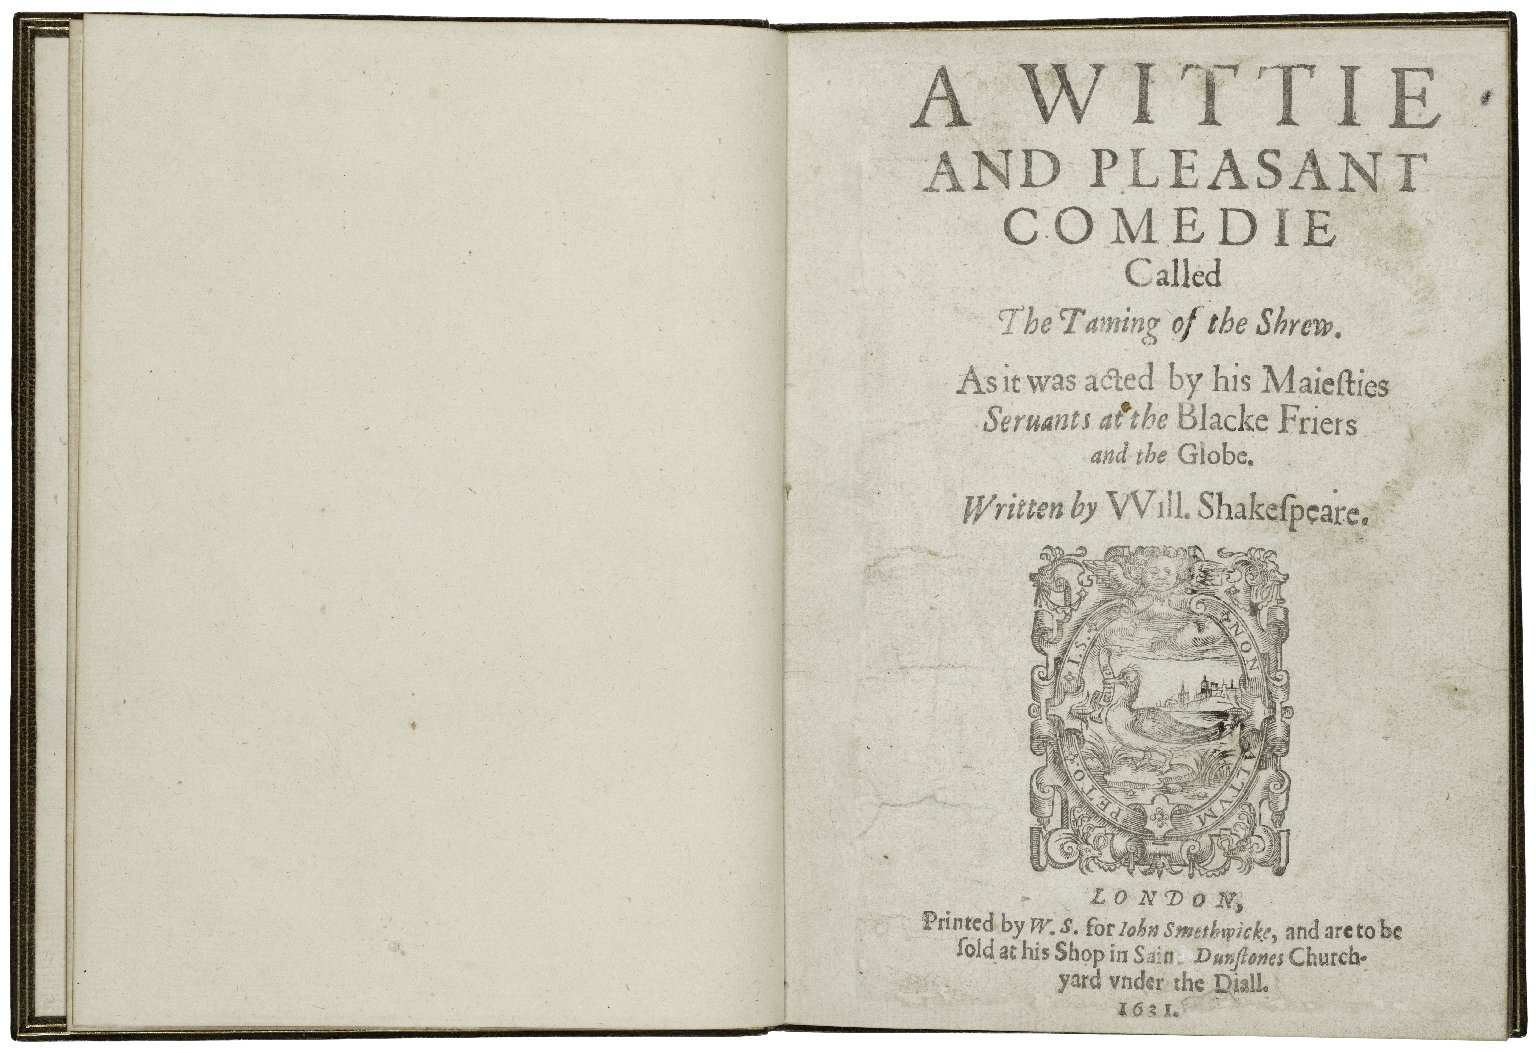 [Taming of the shrew] A wittie and pleasant comedie called The taming of the shrew.